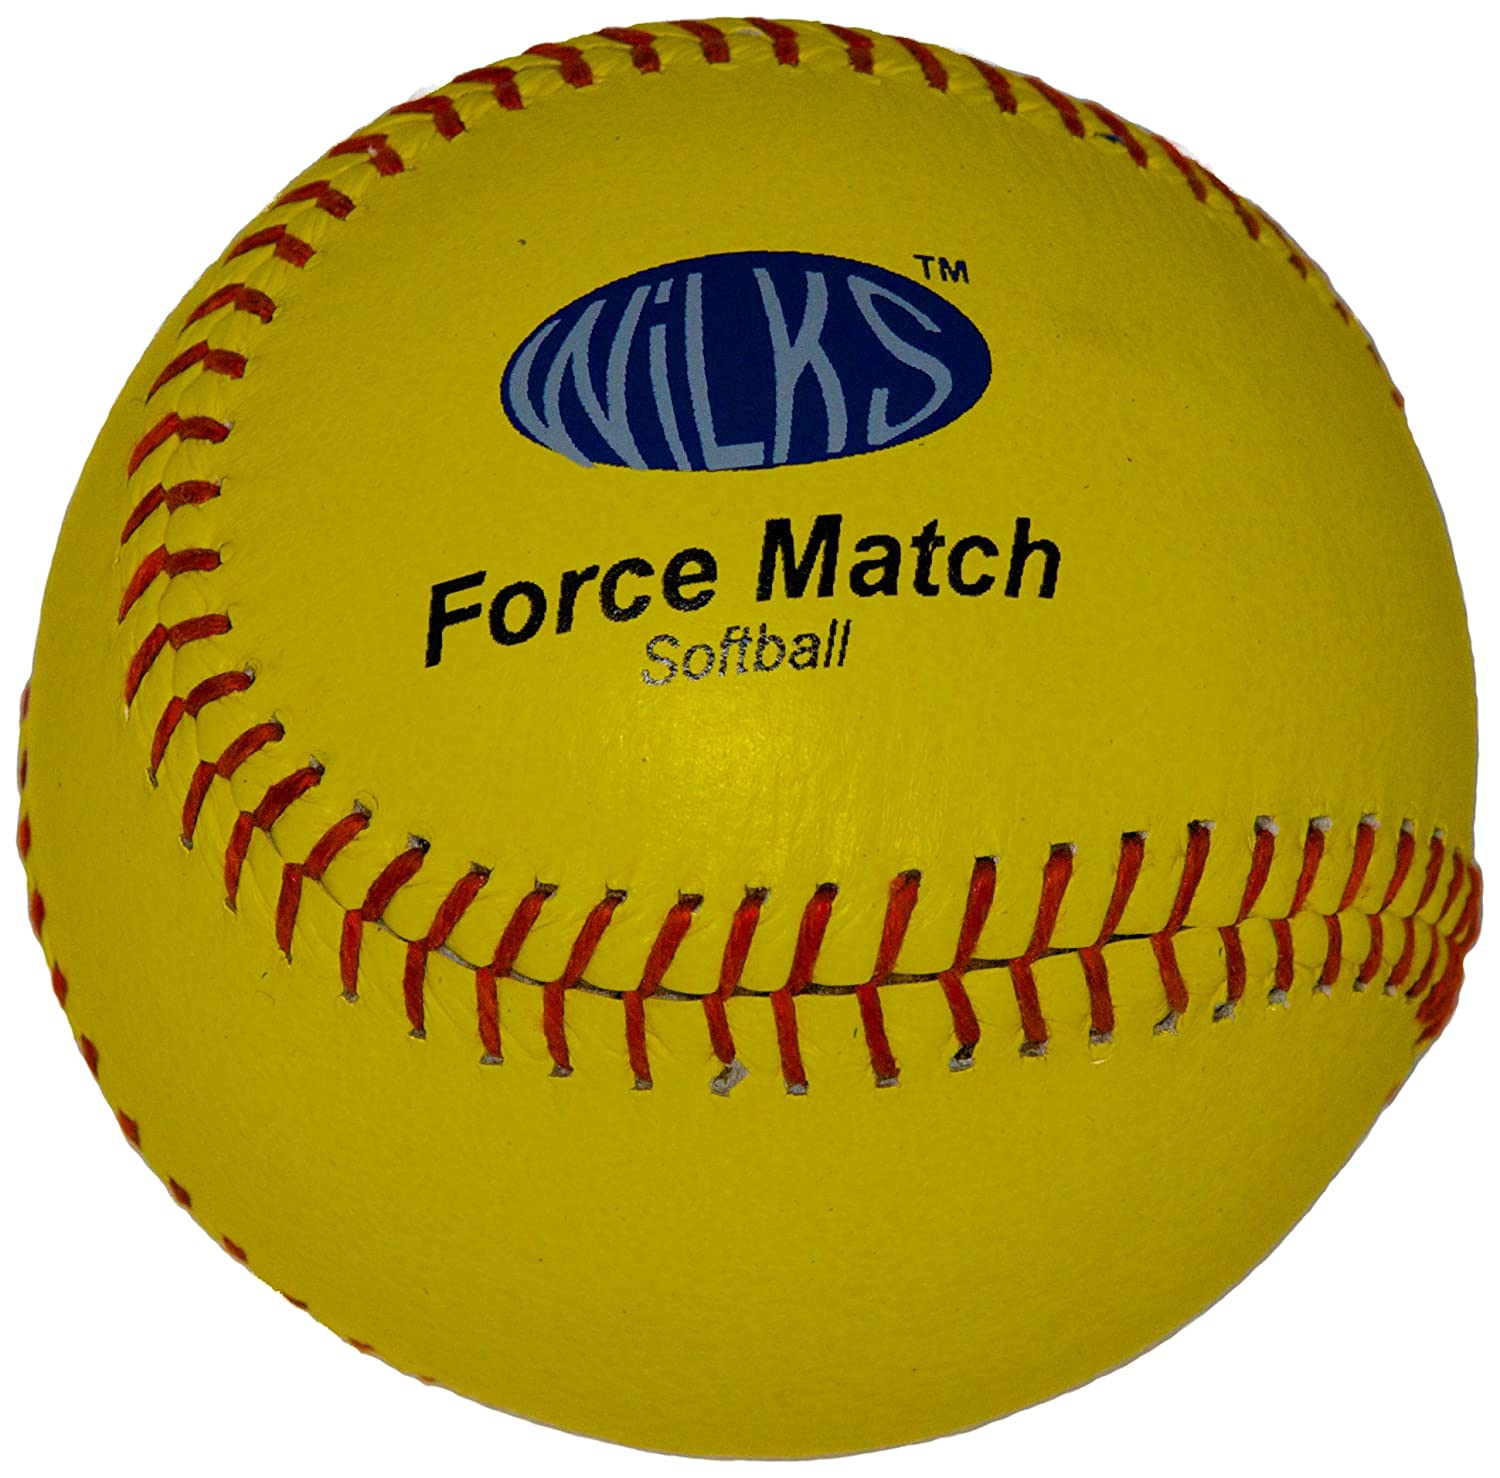 Wilks Force Match - Pelota de cuero de sófbol (11,5 cm), amarillo